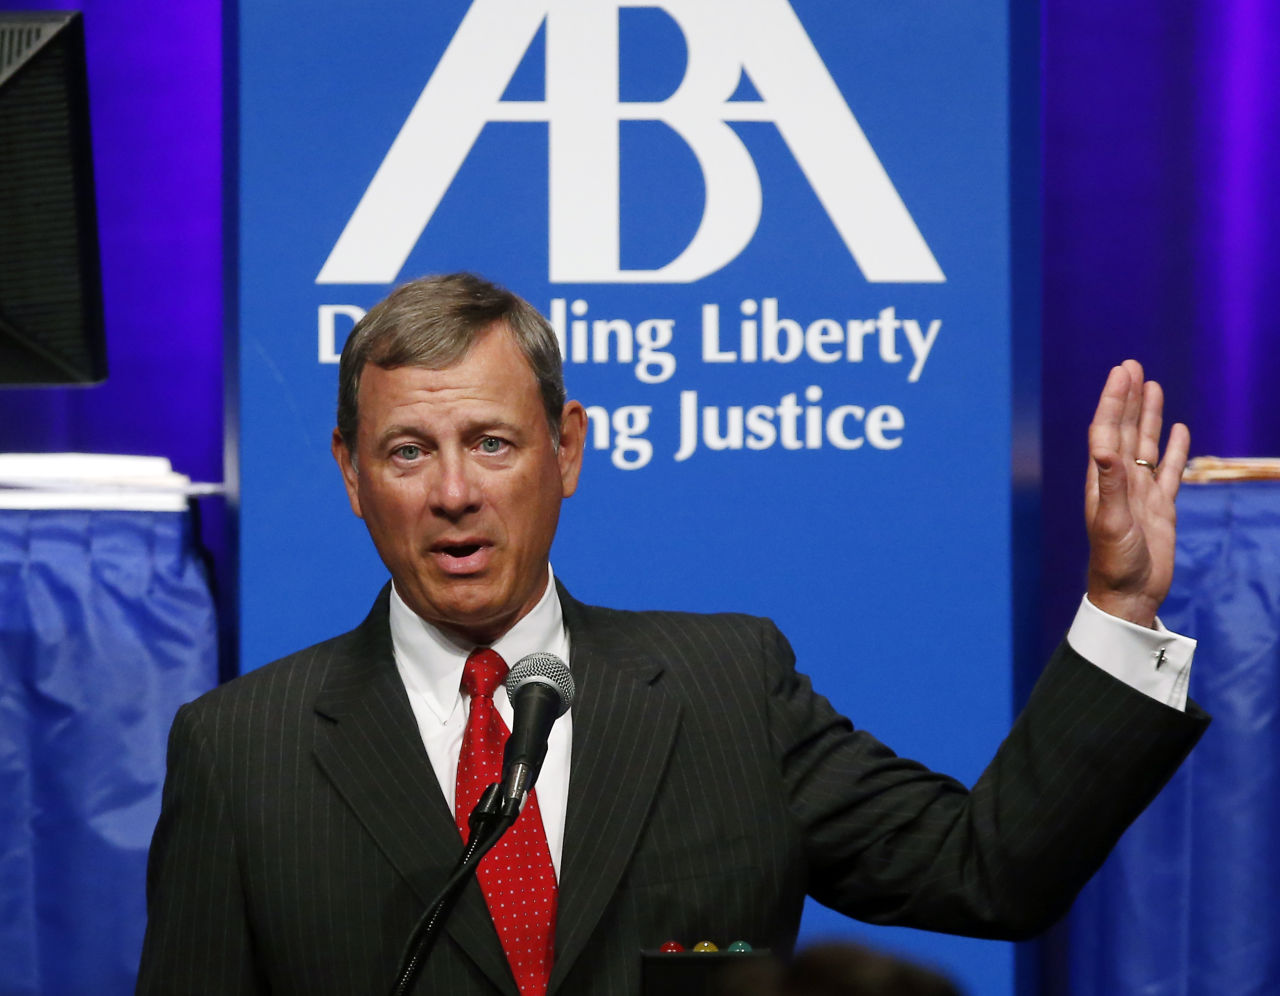 Supreme Court Chief Justice John Roberts speaks at the American Bar Association's annual meeting in Boston on Monday. (Elise Amendola/AP)